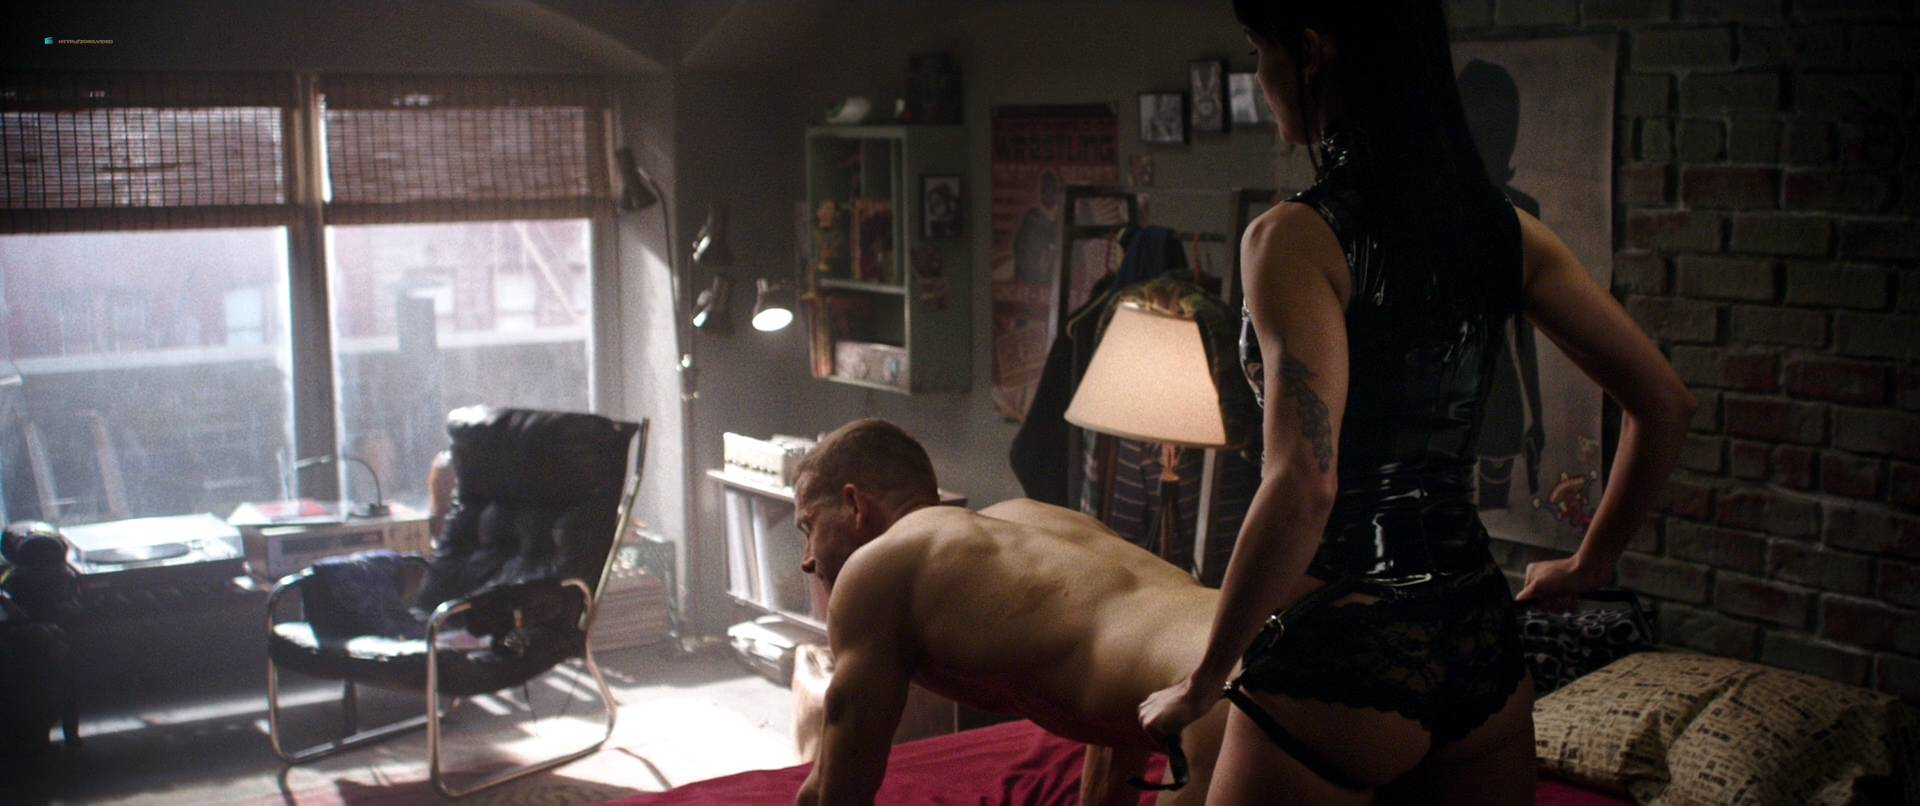 Morena Baccarin hot sex and uber sexy - Deadpool (2016) HD 1080p (10)